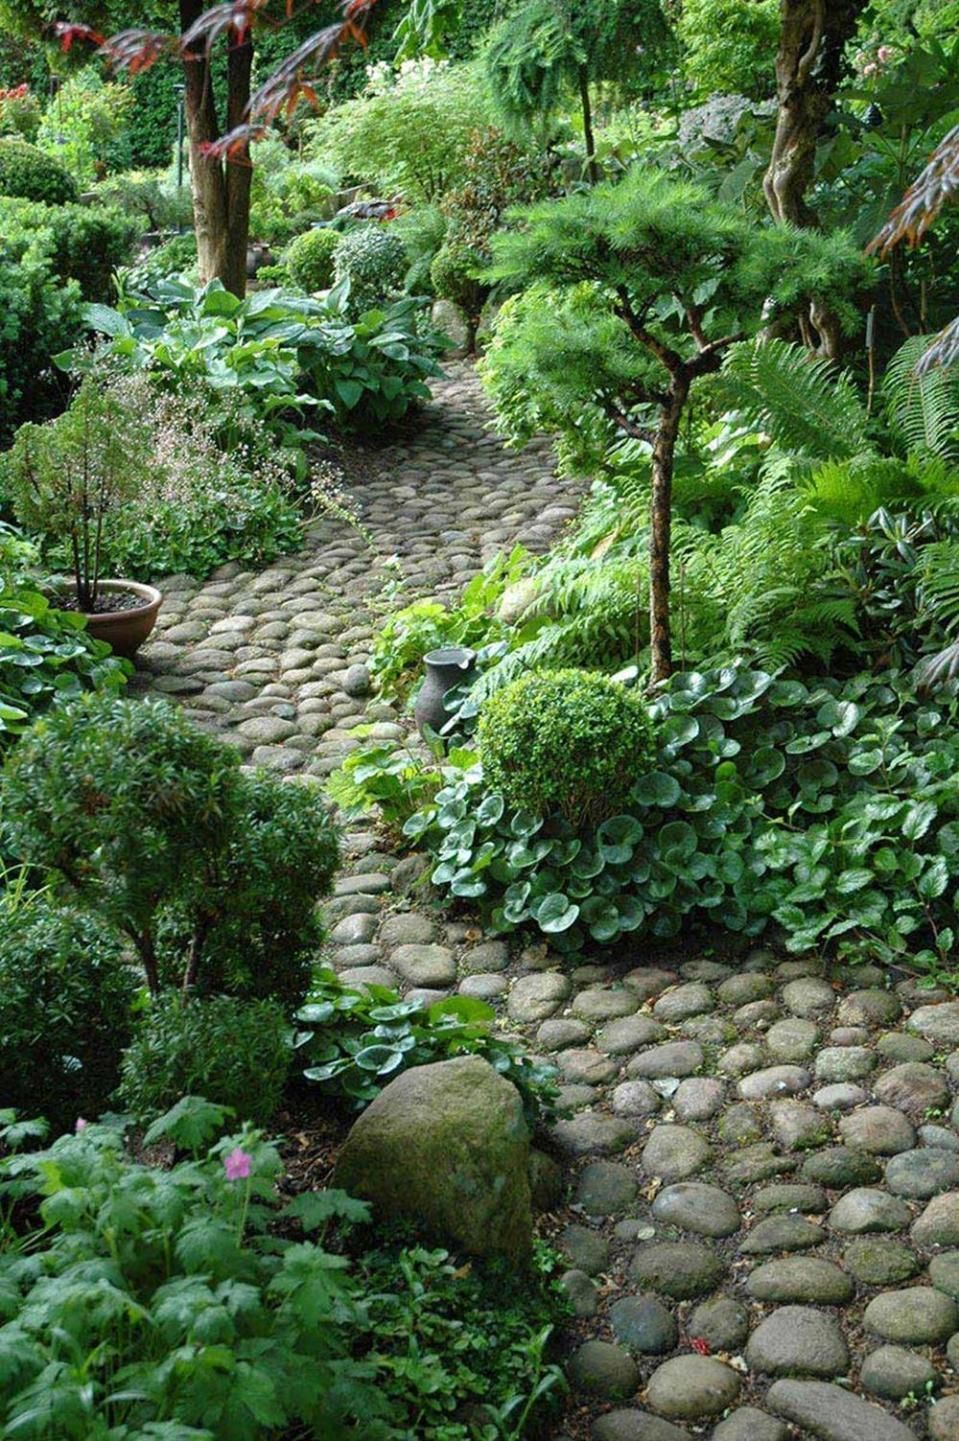 Best Beautiful Stone Path Around Flowers Ideas Ease The Enjoyment When Brushed Up Against And The Fragrance Is In 2020 Beautiful Gardens Garden Paths Garden Pathway